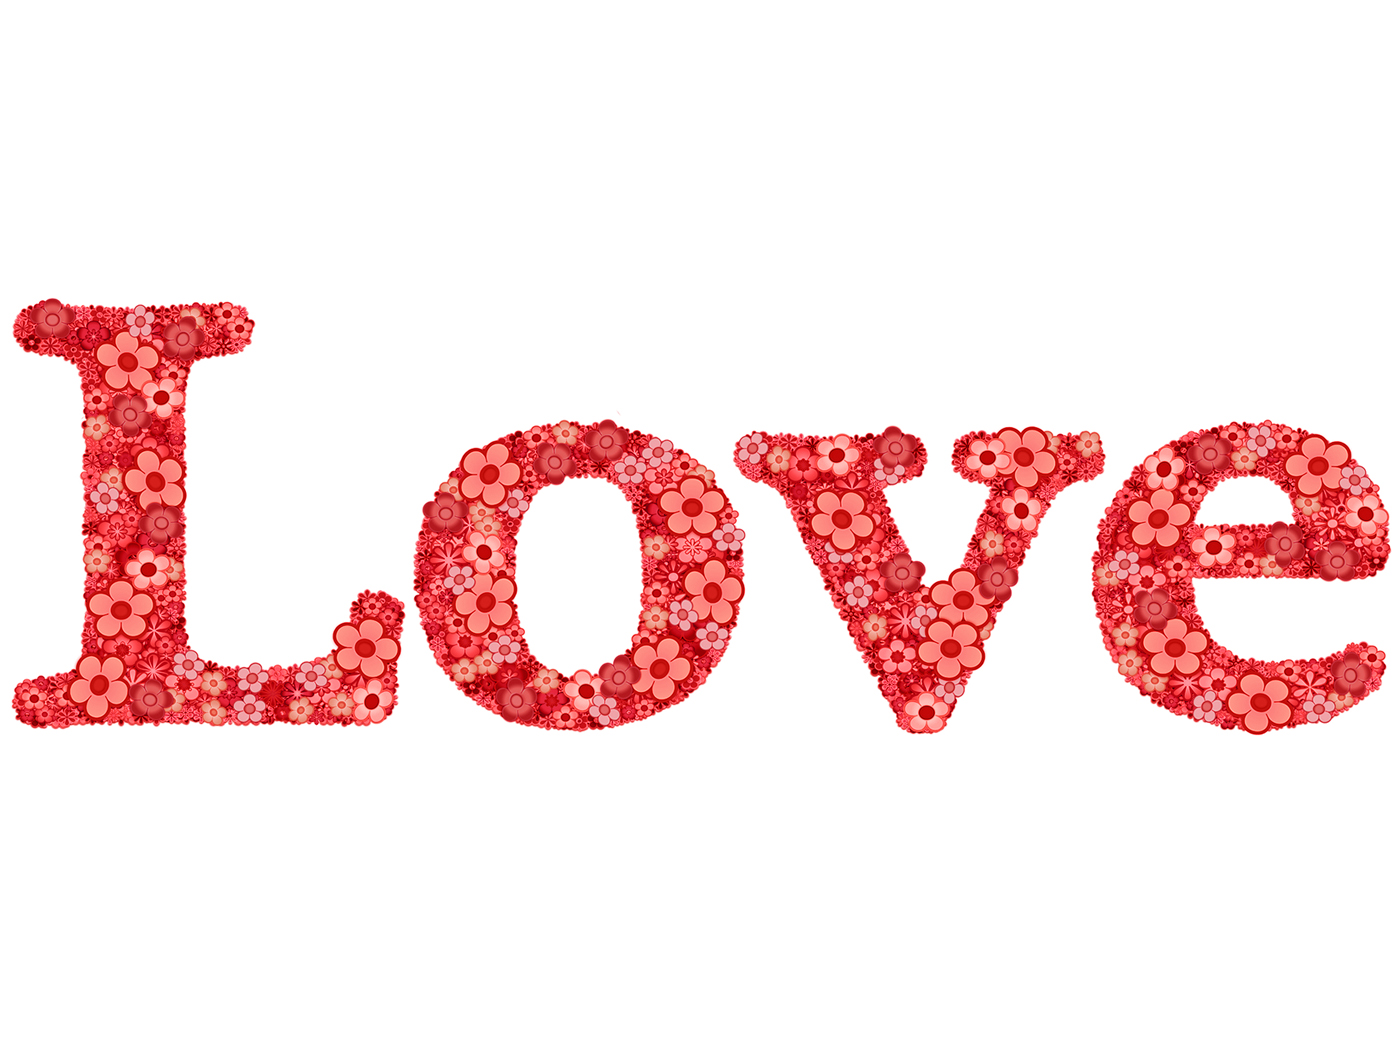 Love Wallpaper In Name : Rimsha Name Wallpaper in Love - WallpaperSafari